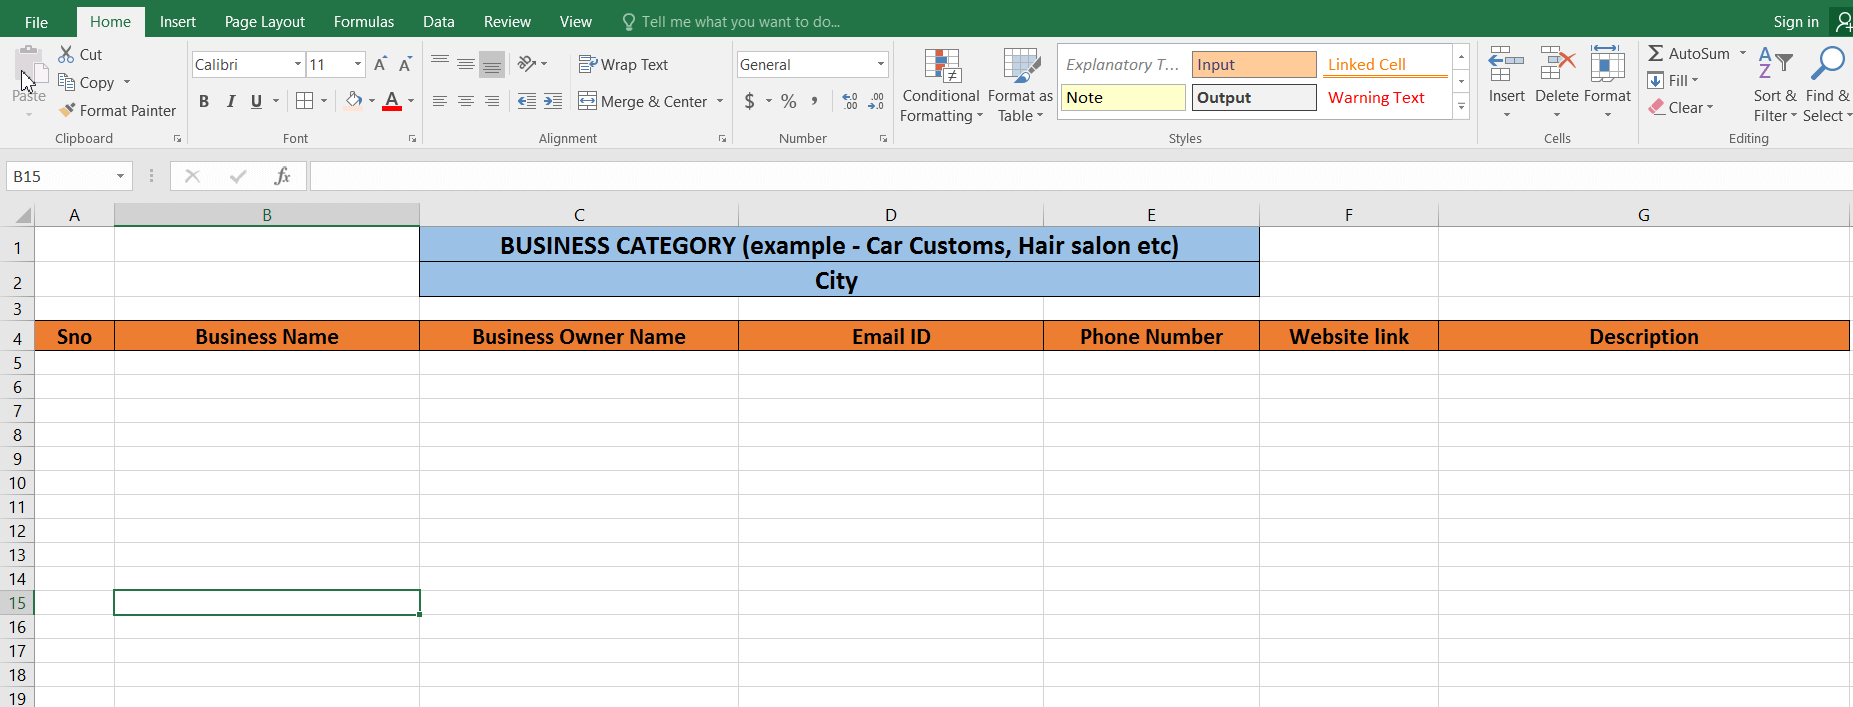 excel template iftiseo